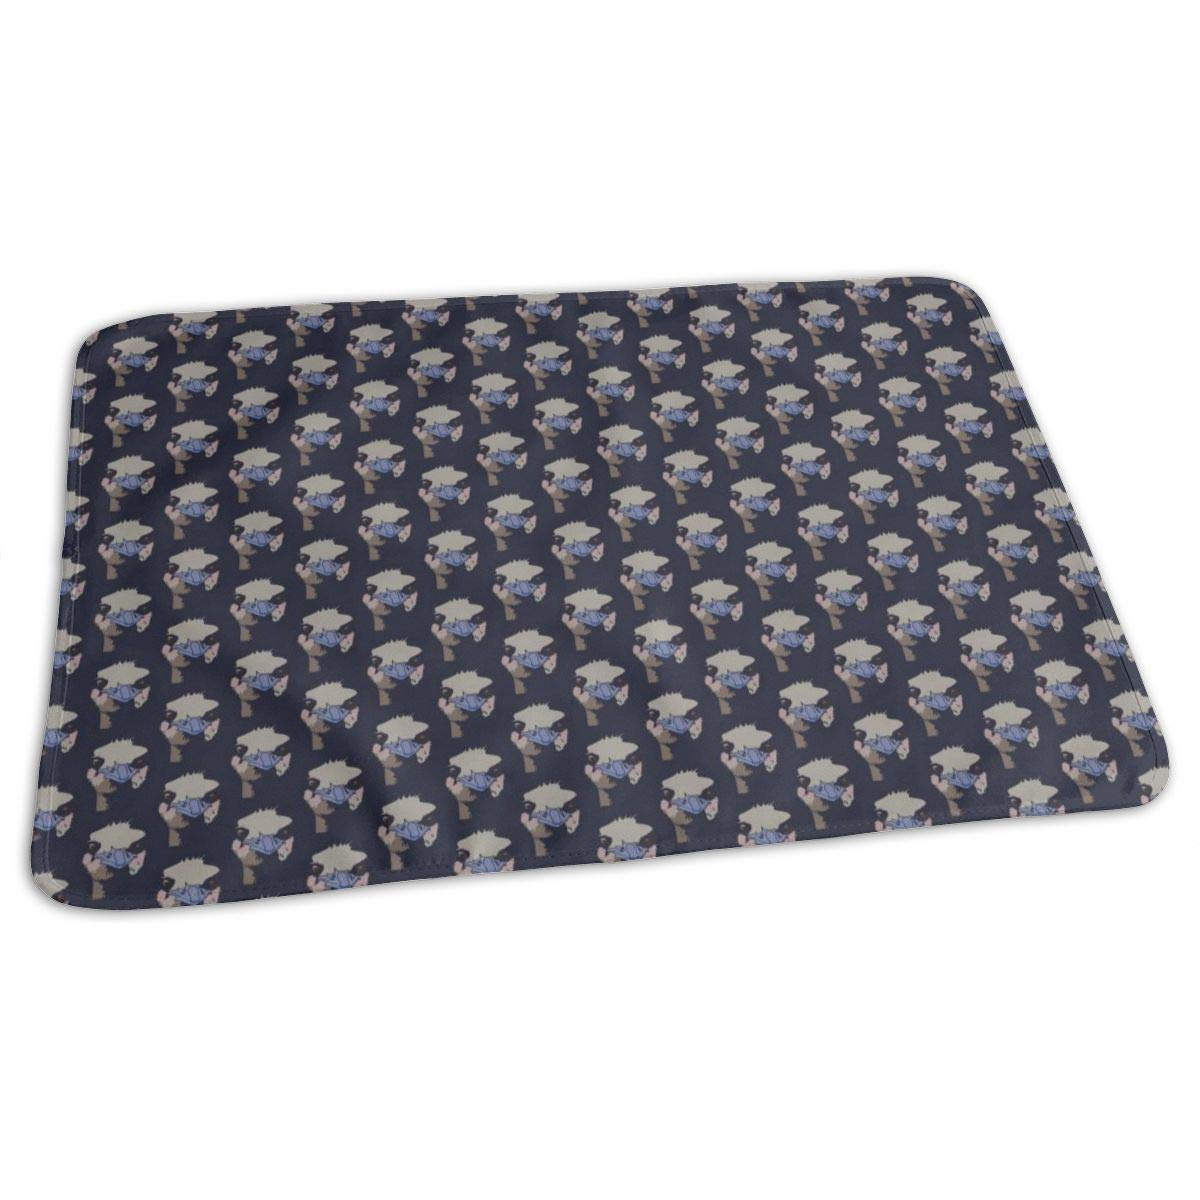 Ostrich Pattern Baby Changing Pad Foldable Newborn Infants Diaper Change Mat for Home Travel Outdoors by NKZSUX